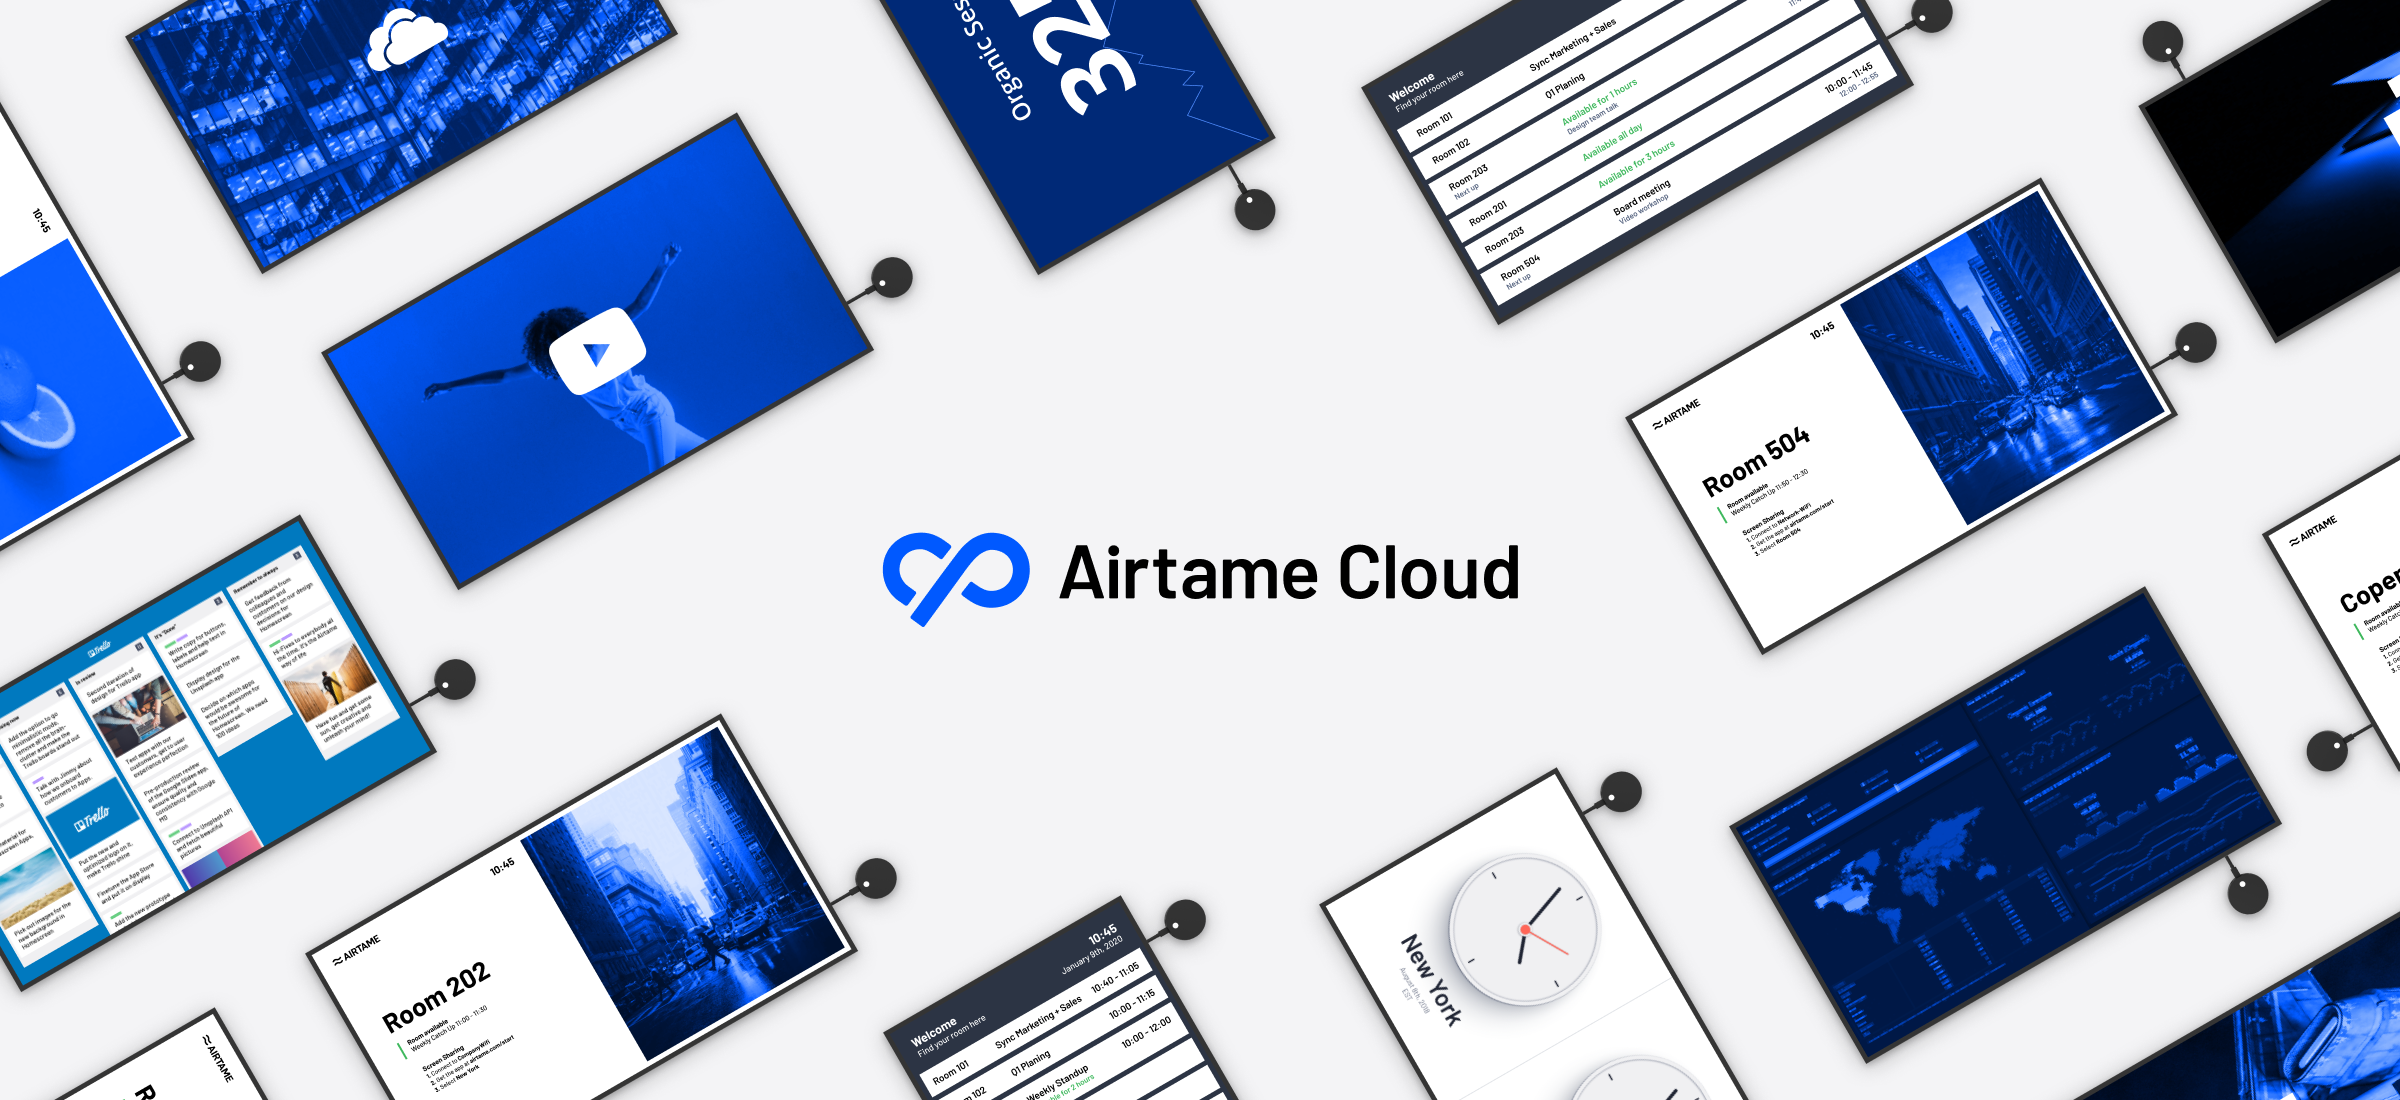 Making screens smarter with Airtame Cloud